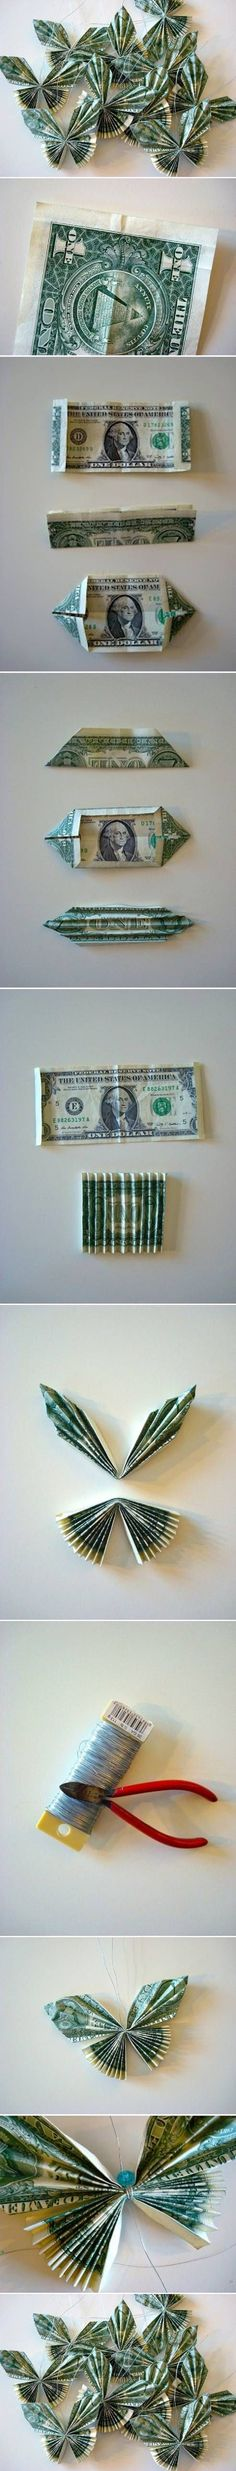 DIY Money Bill Butterfly